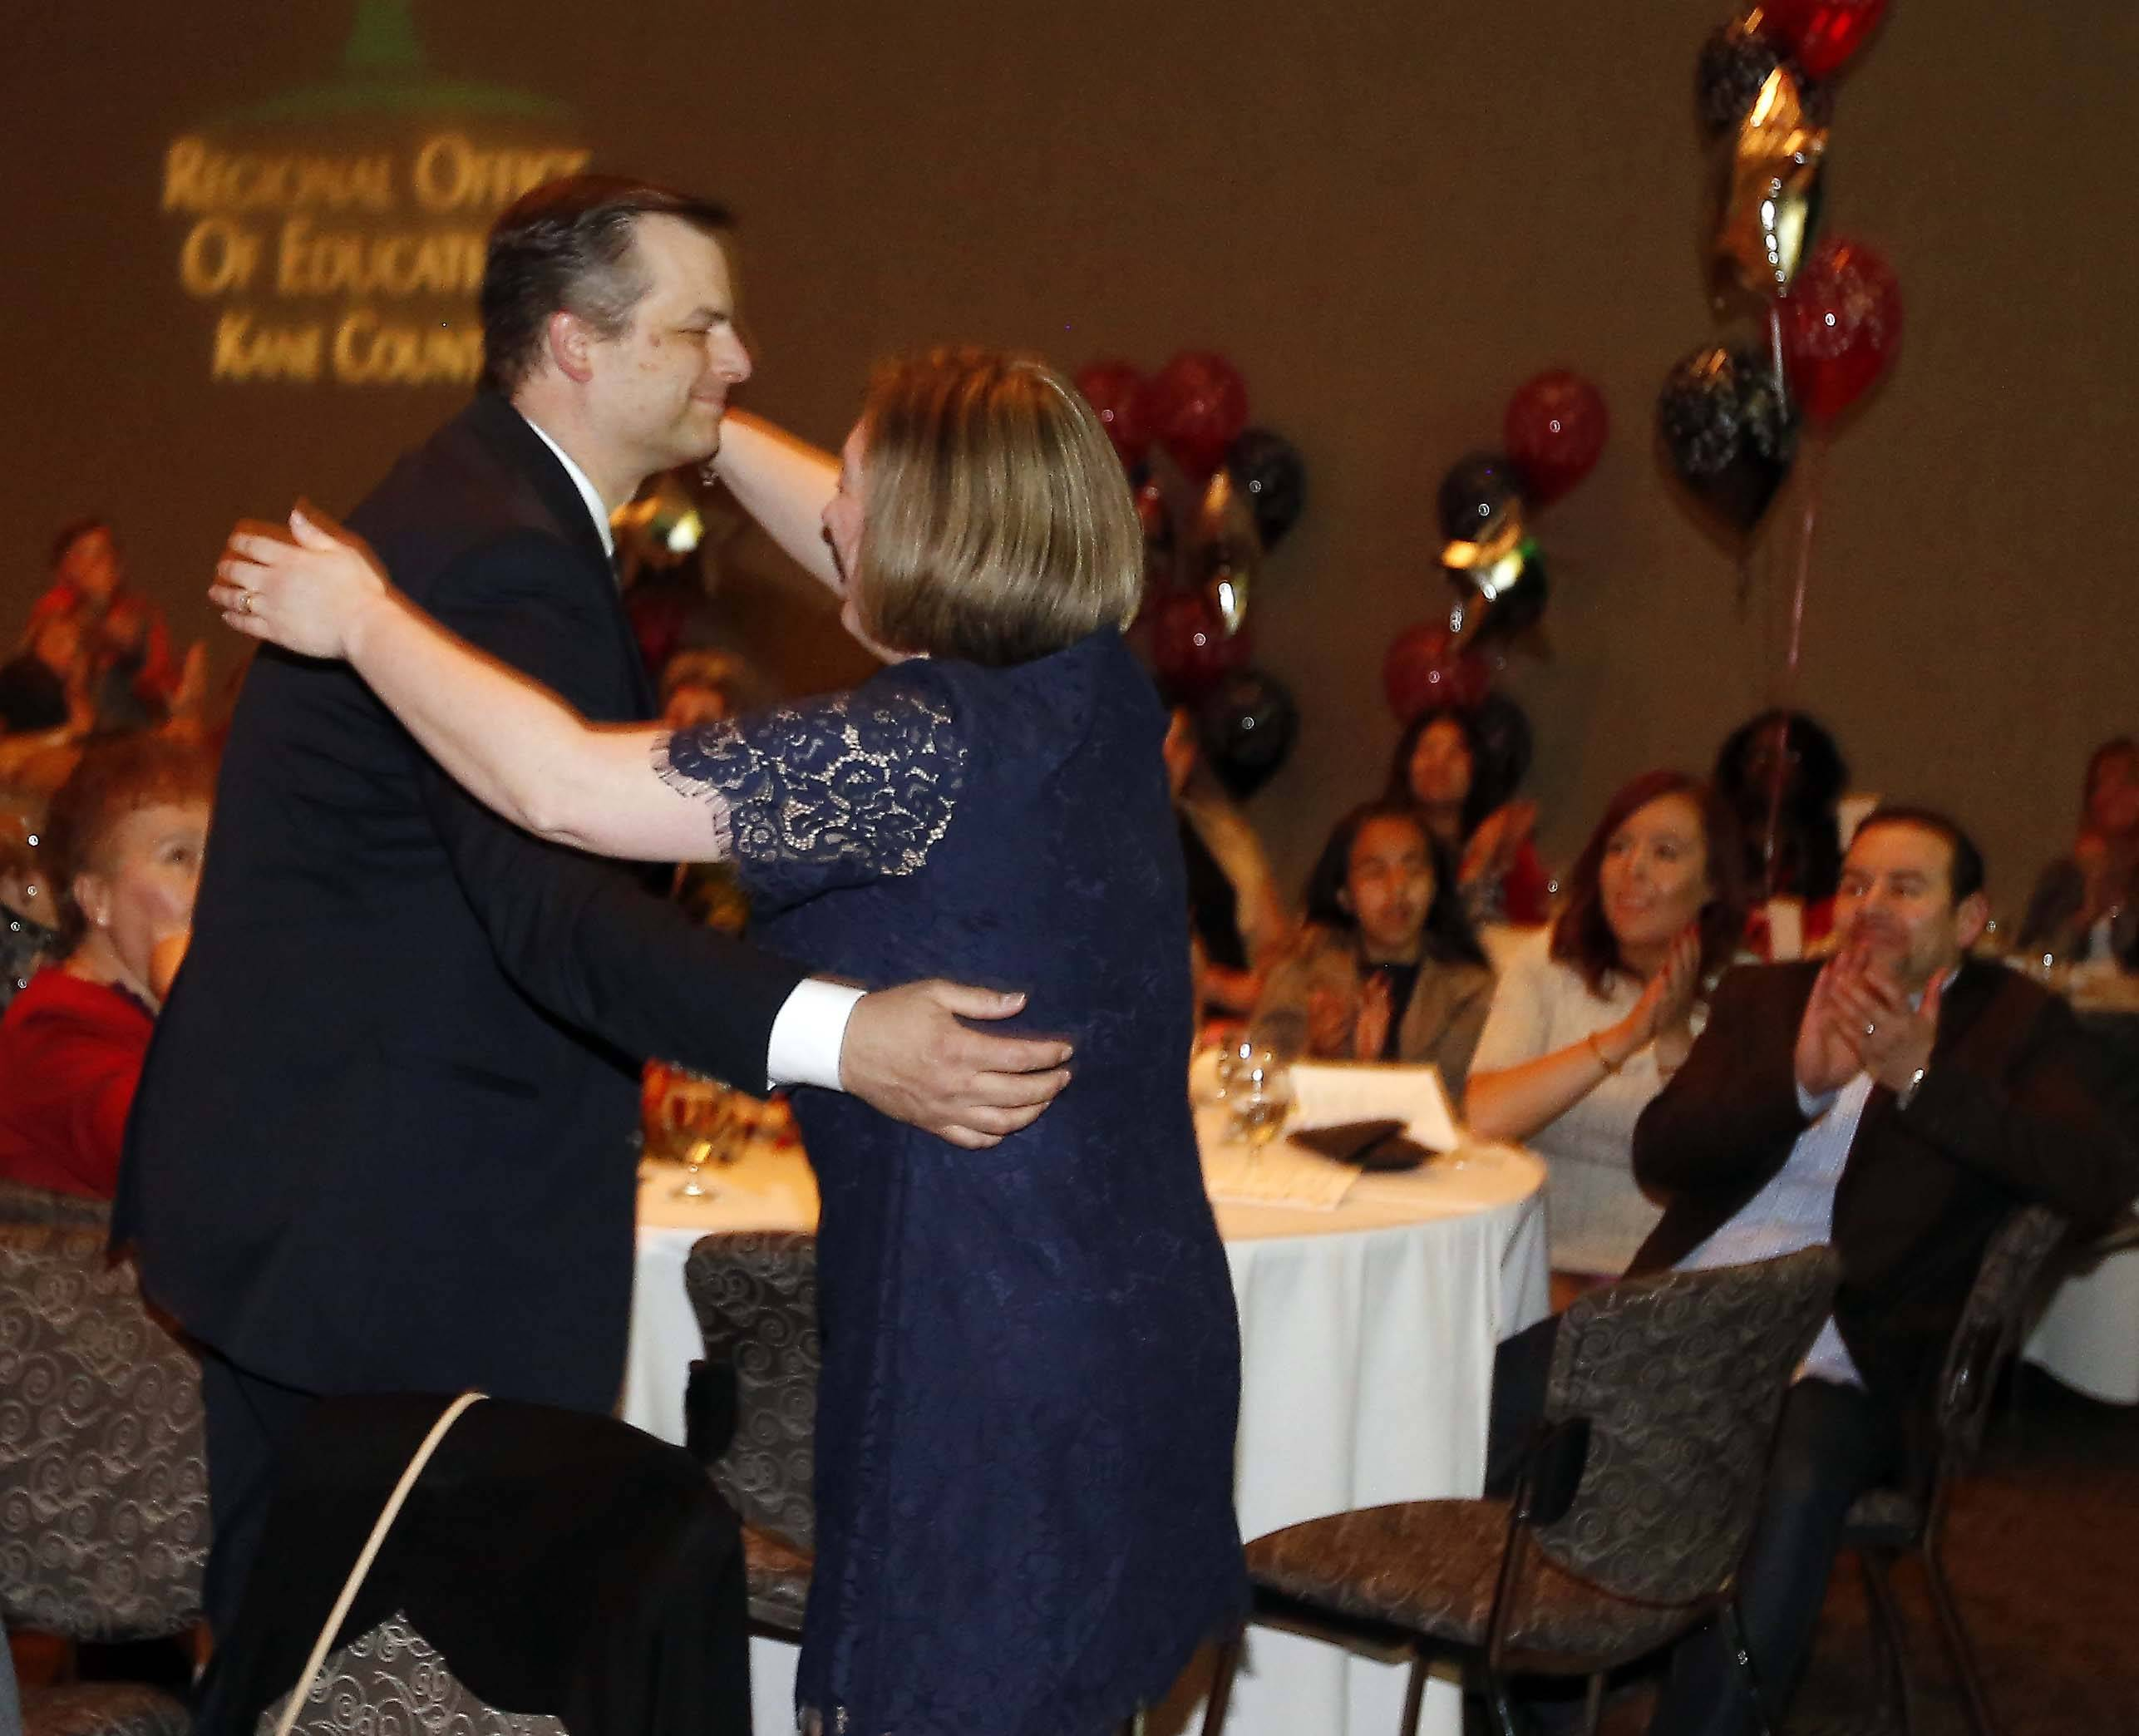 Kane County Educator of the Year Matt Gain gets a giant hug from his wife, Kerry. Gain, who teaches at Geneva Middle School South in District 304, took top honors Friday night at the Q Center in St. Charles.